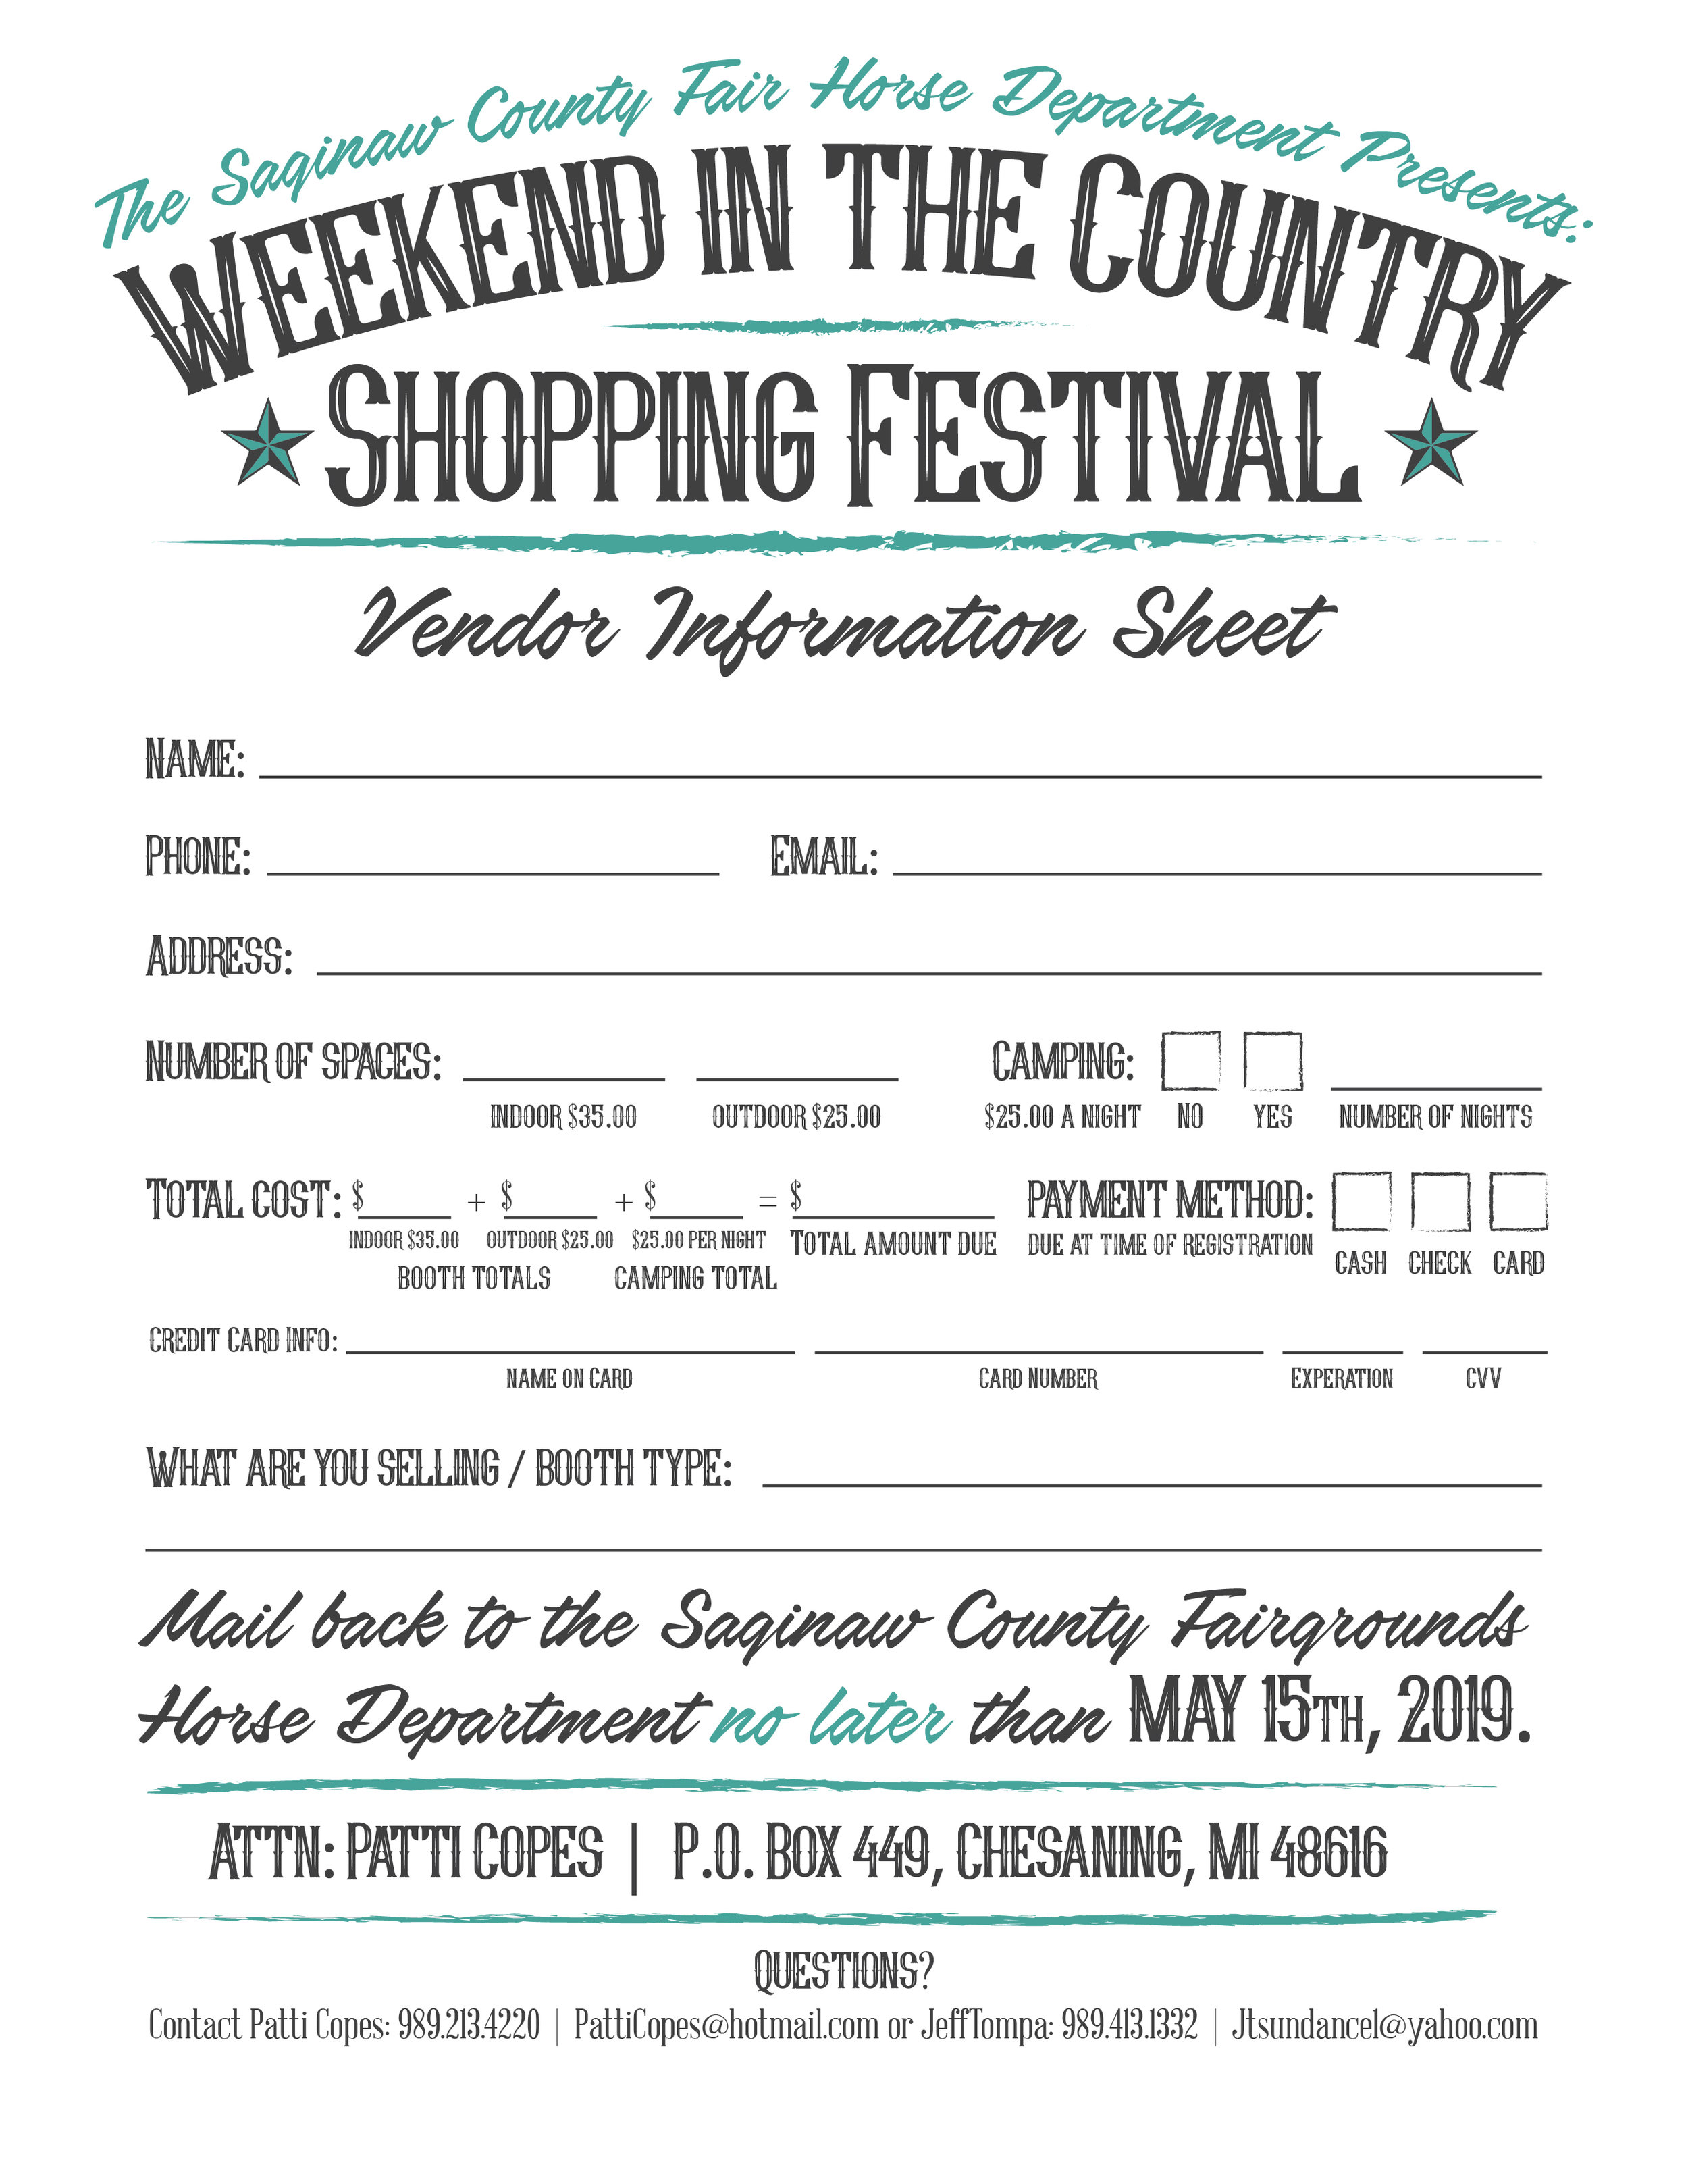 Copes_Weekend In The Country Flyer_Back.jpg